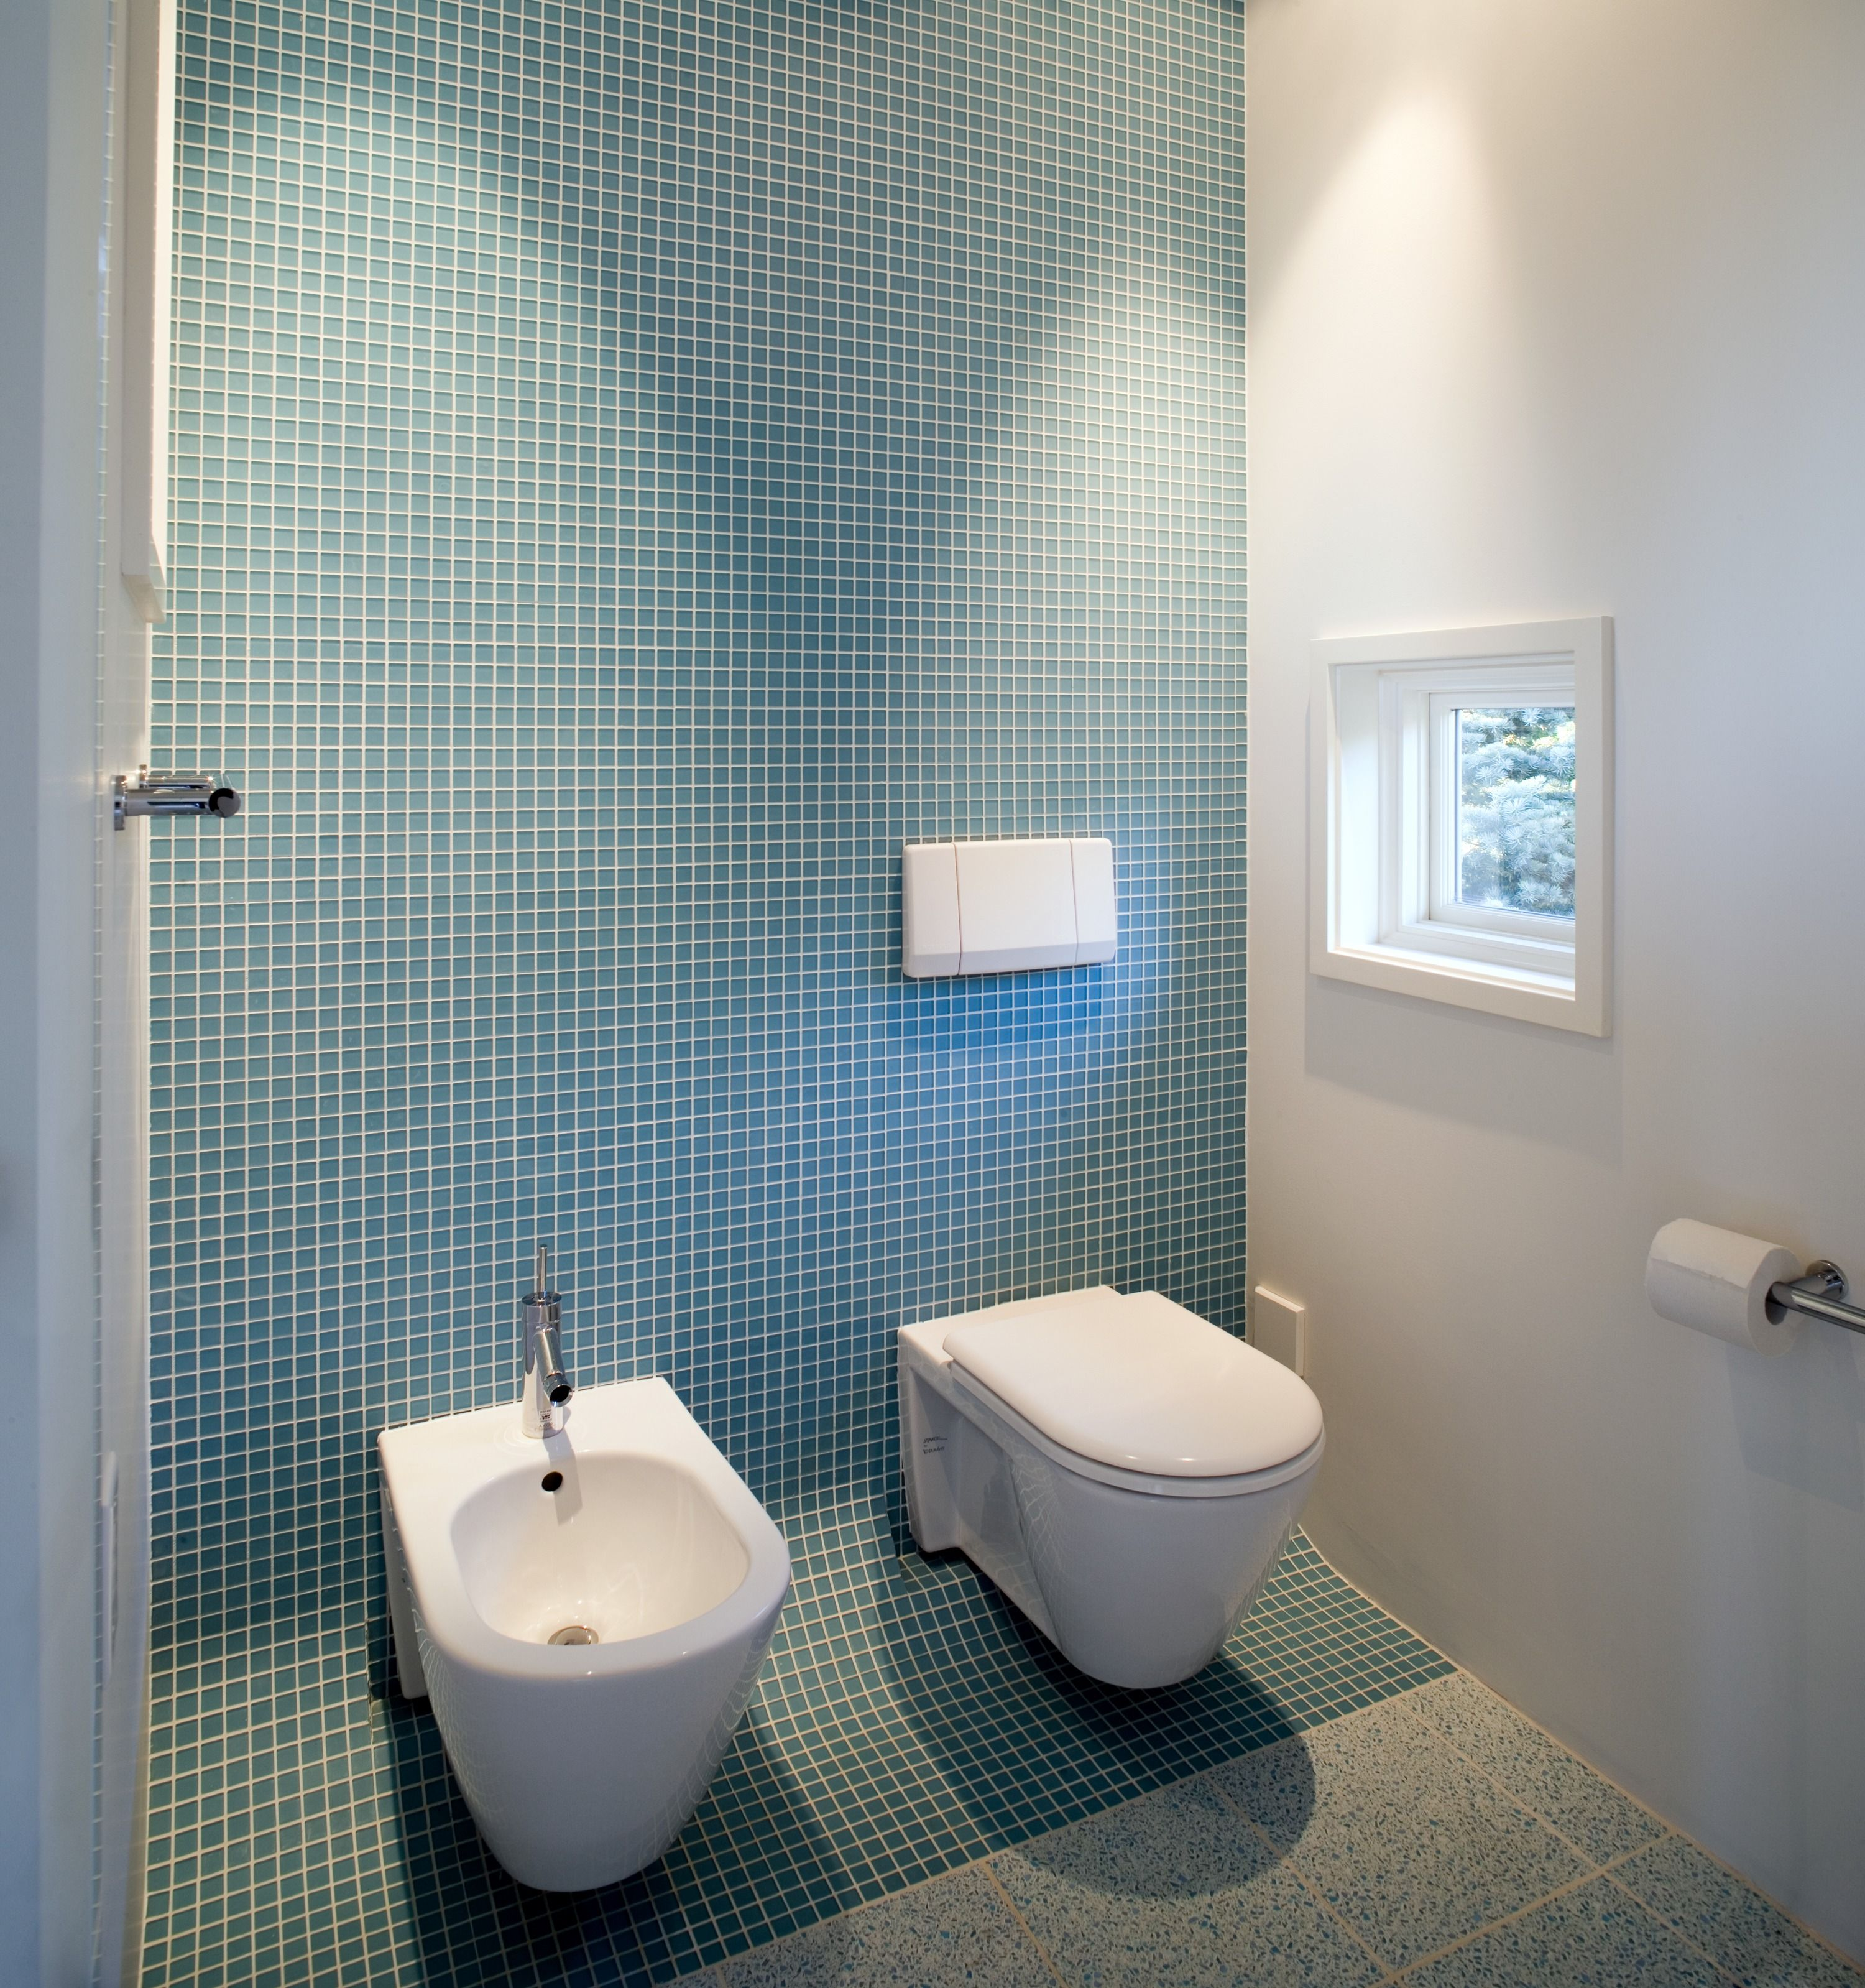 We Don T See It Too Often But A Bidet And Blue Sleek Tile